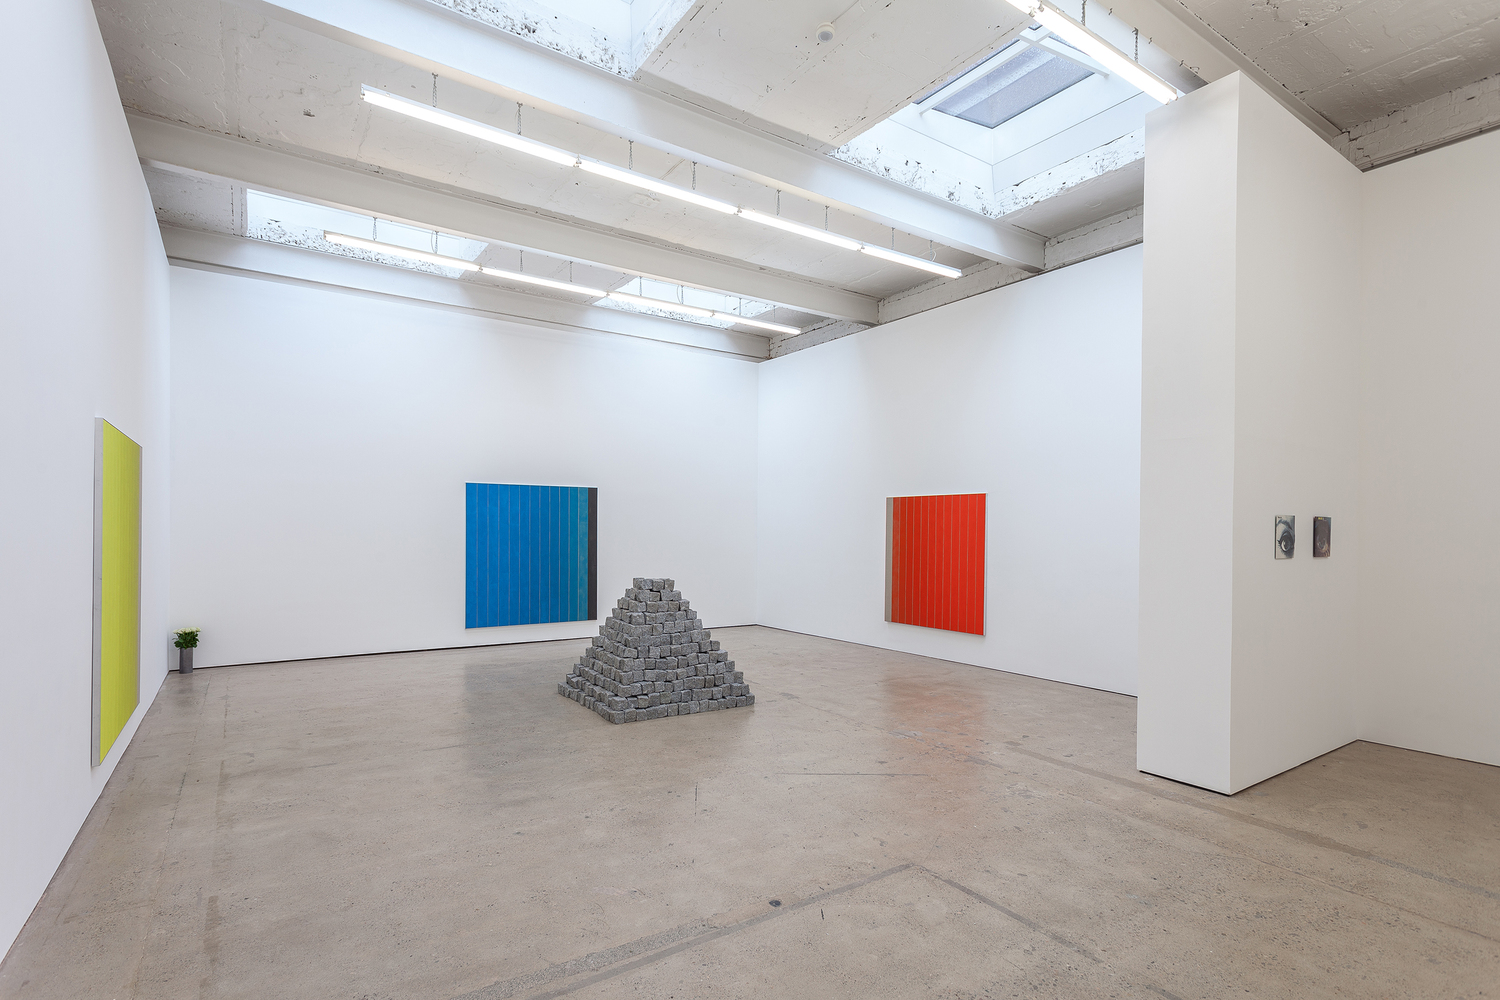 Installation view, The Modern Institute, Aird's Lane, Glasgow, 2018